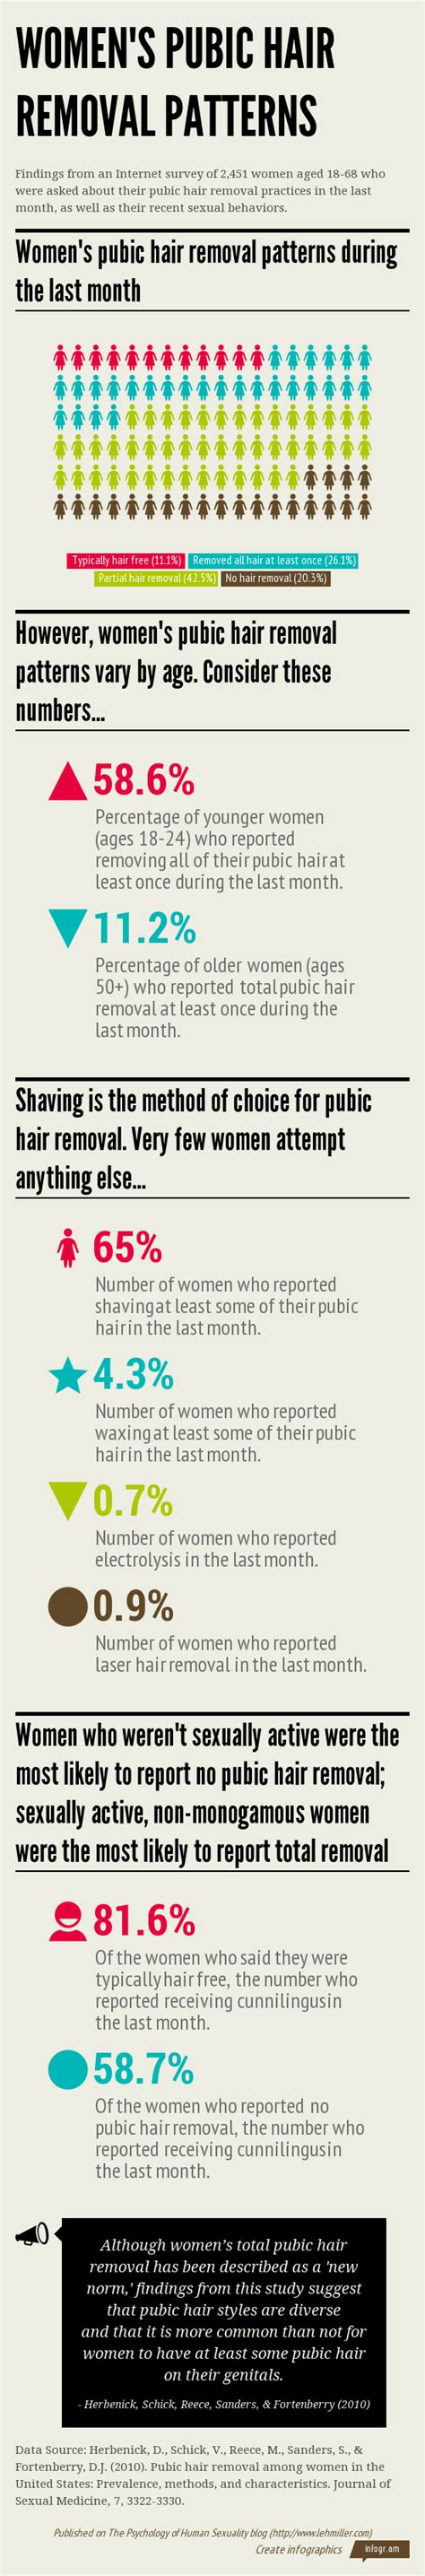 pubic hair style survey women s pubic hair removal patterns infographic sex